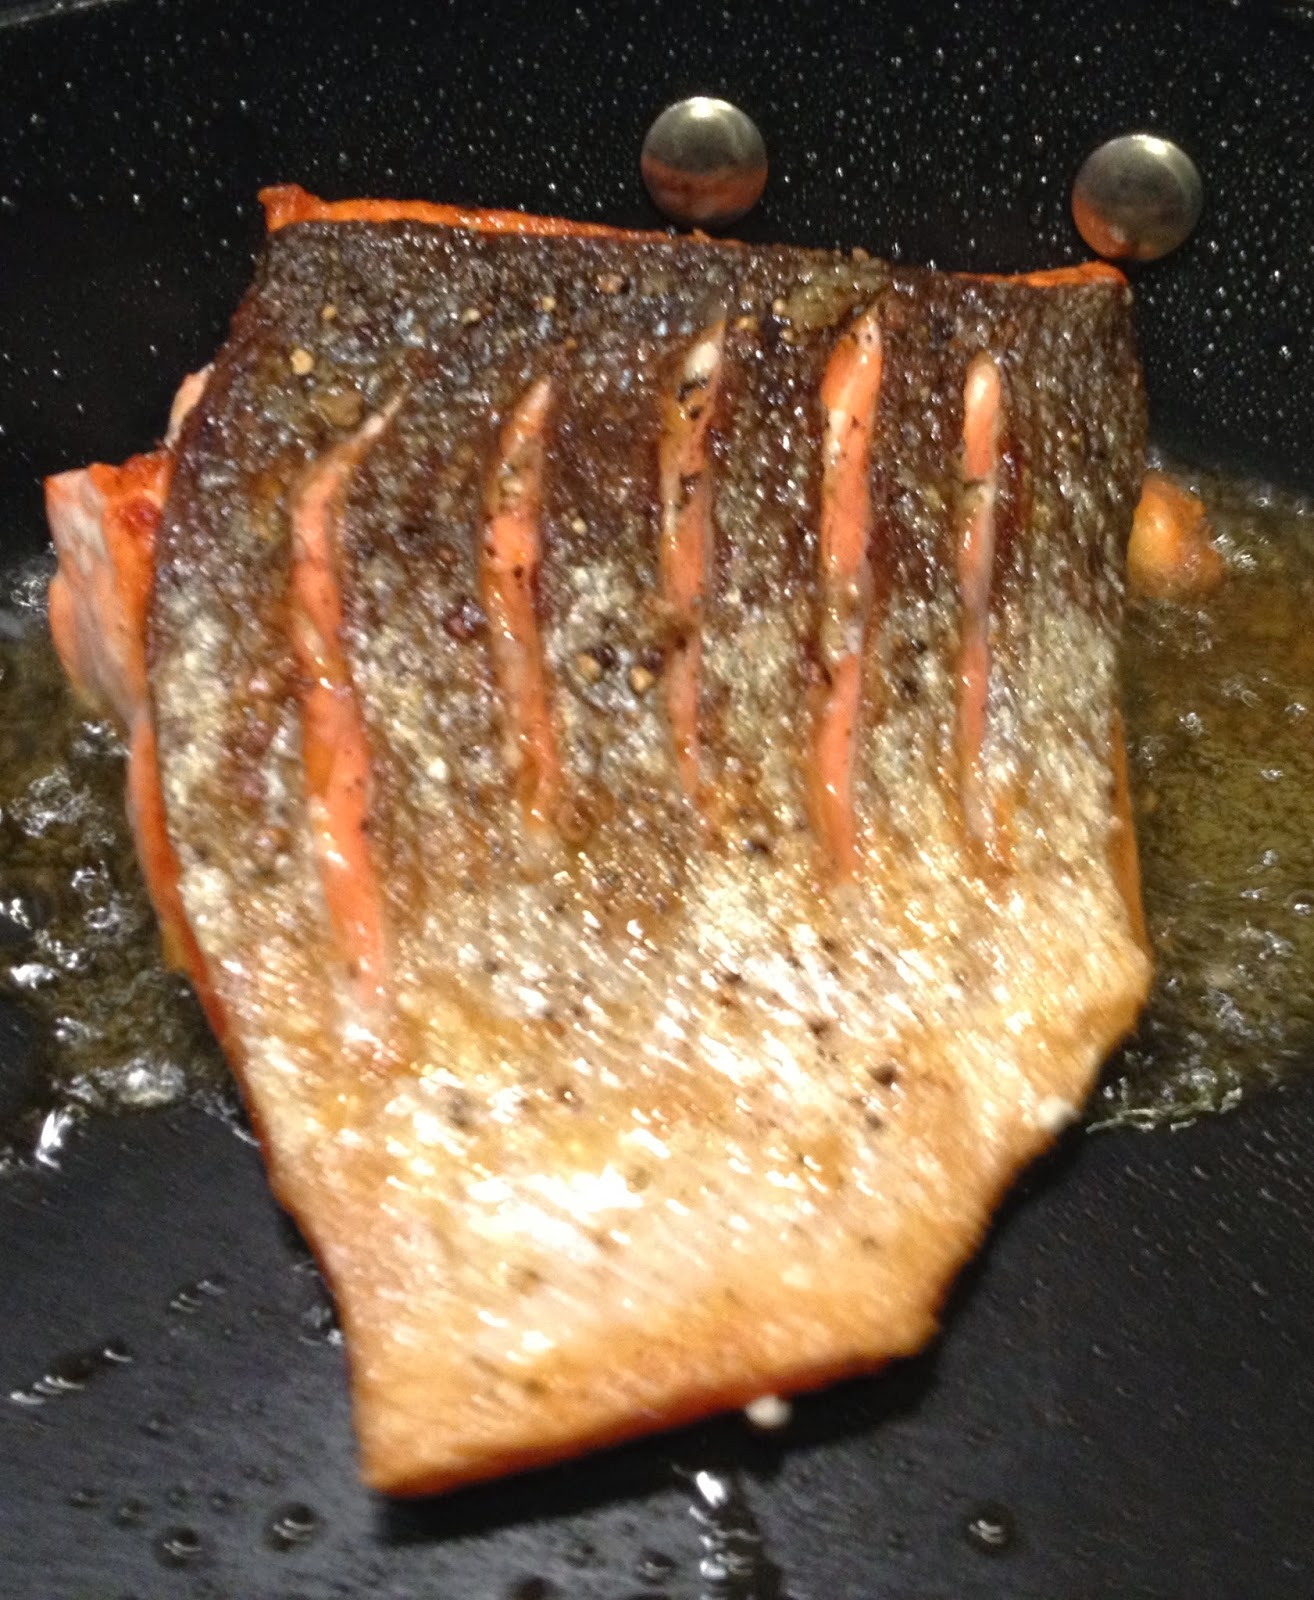 Once Turned To The Flesh Side Of The Fillet, Tilt Pan And Let Olive Oil Cook  The